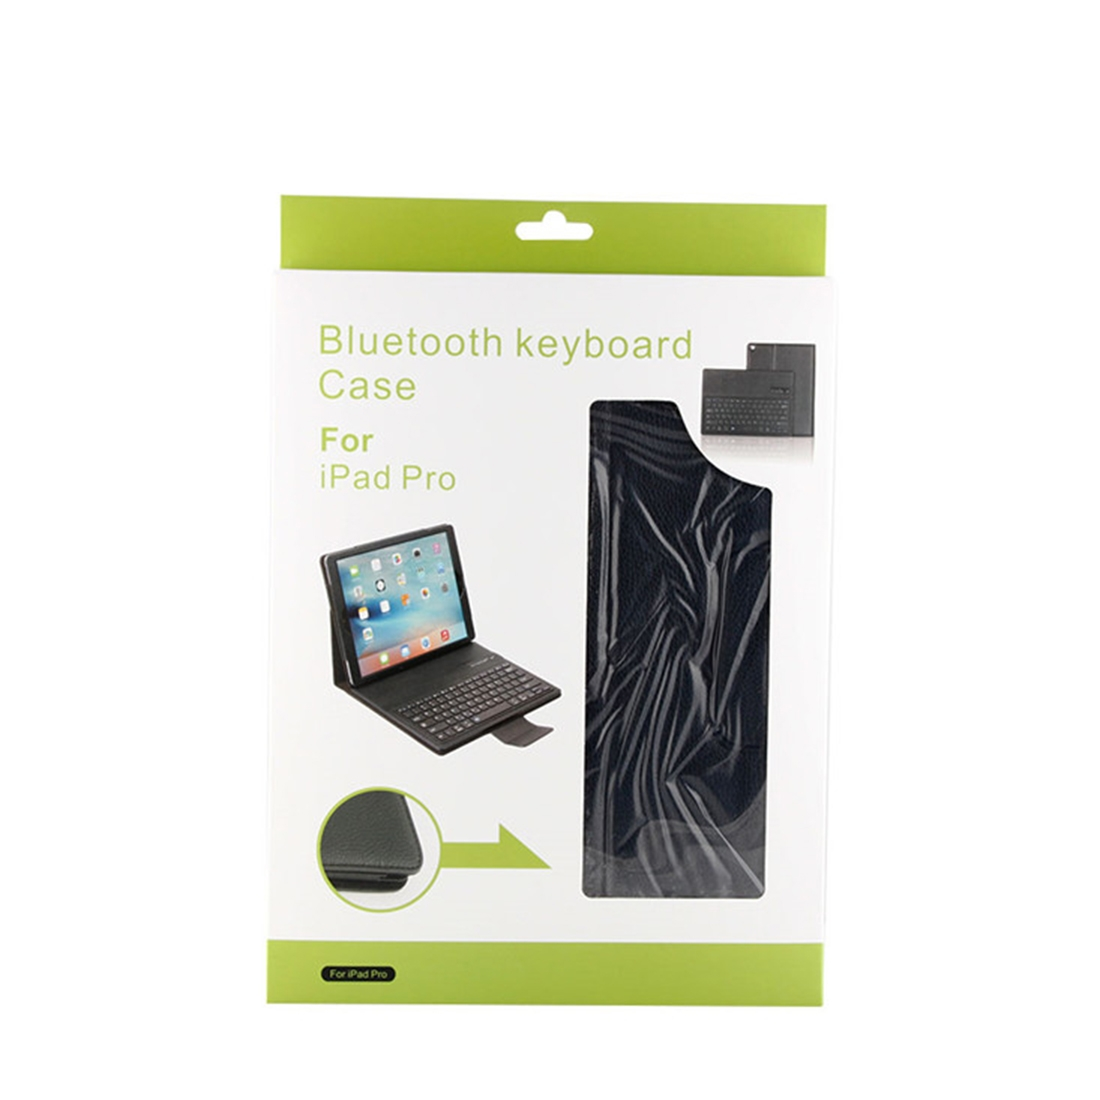 iPad Pro 12.9 Case With Keyboard (2015-17) With Leather Case & Detachable Keyboard (Black)